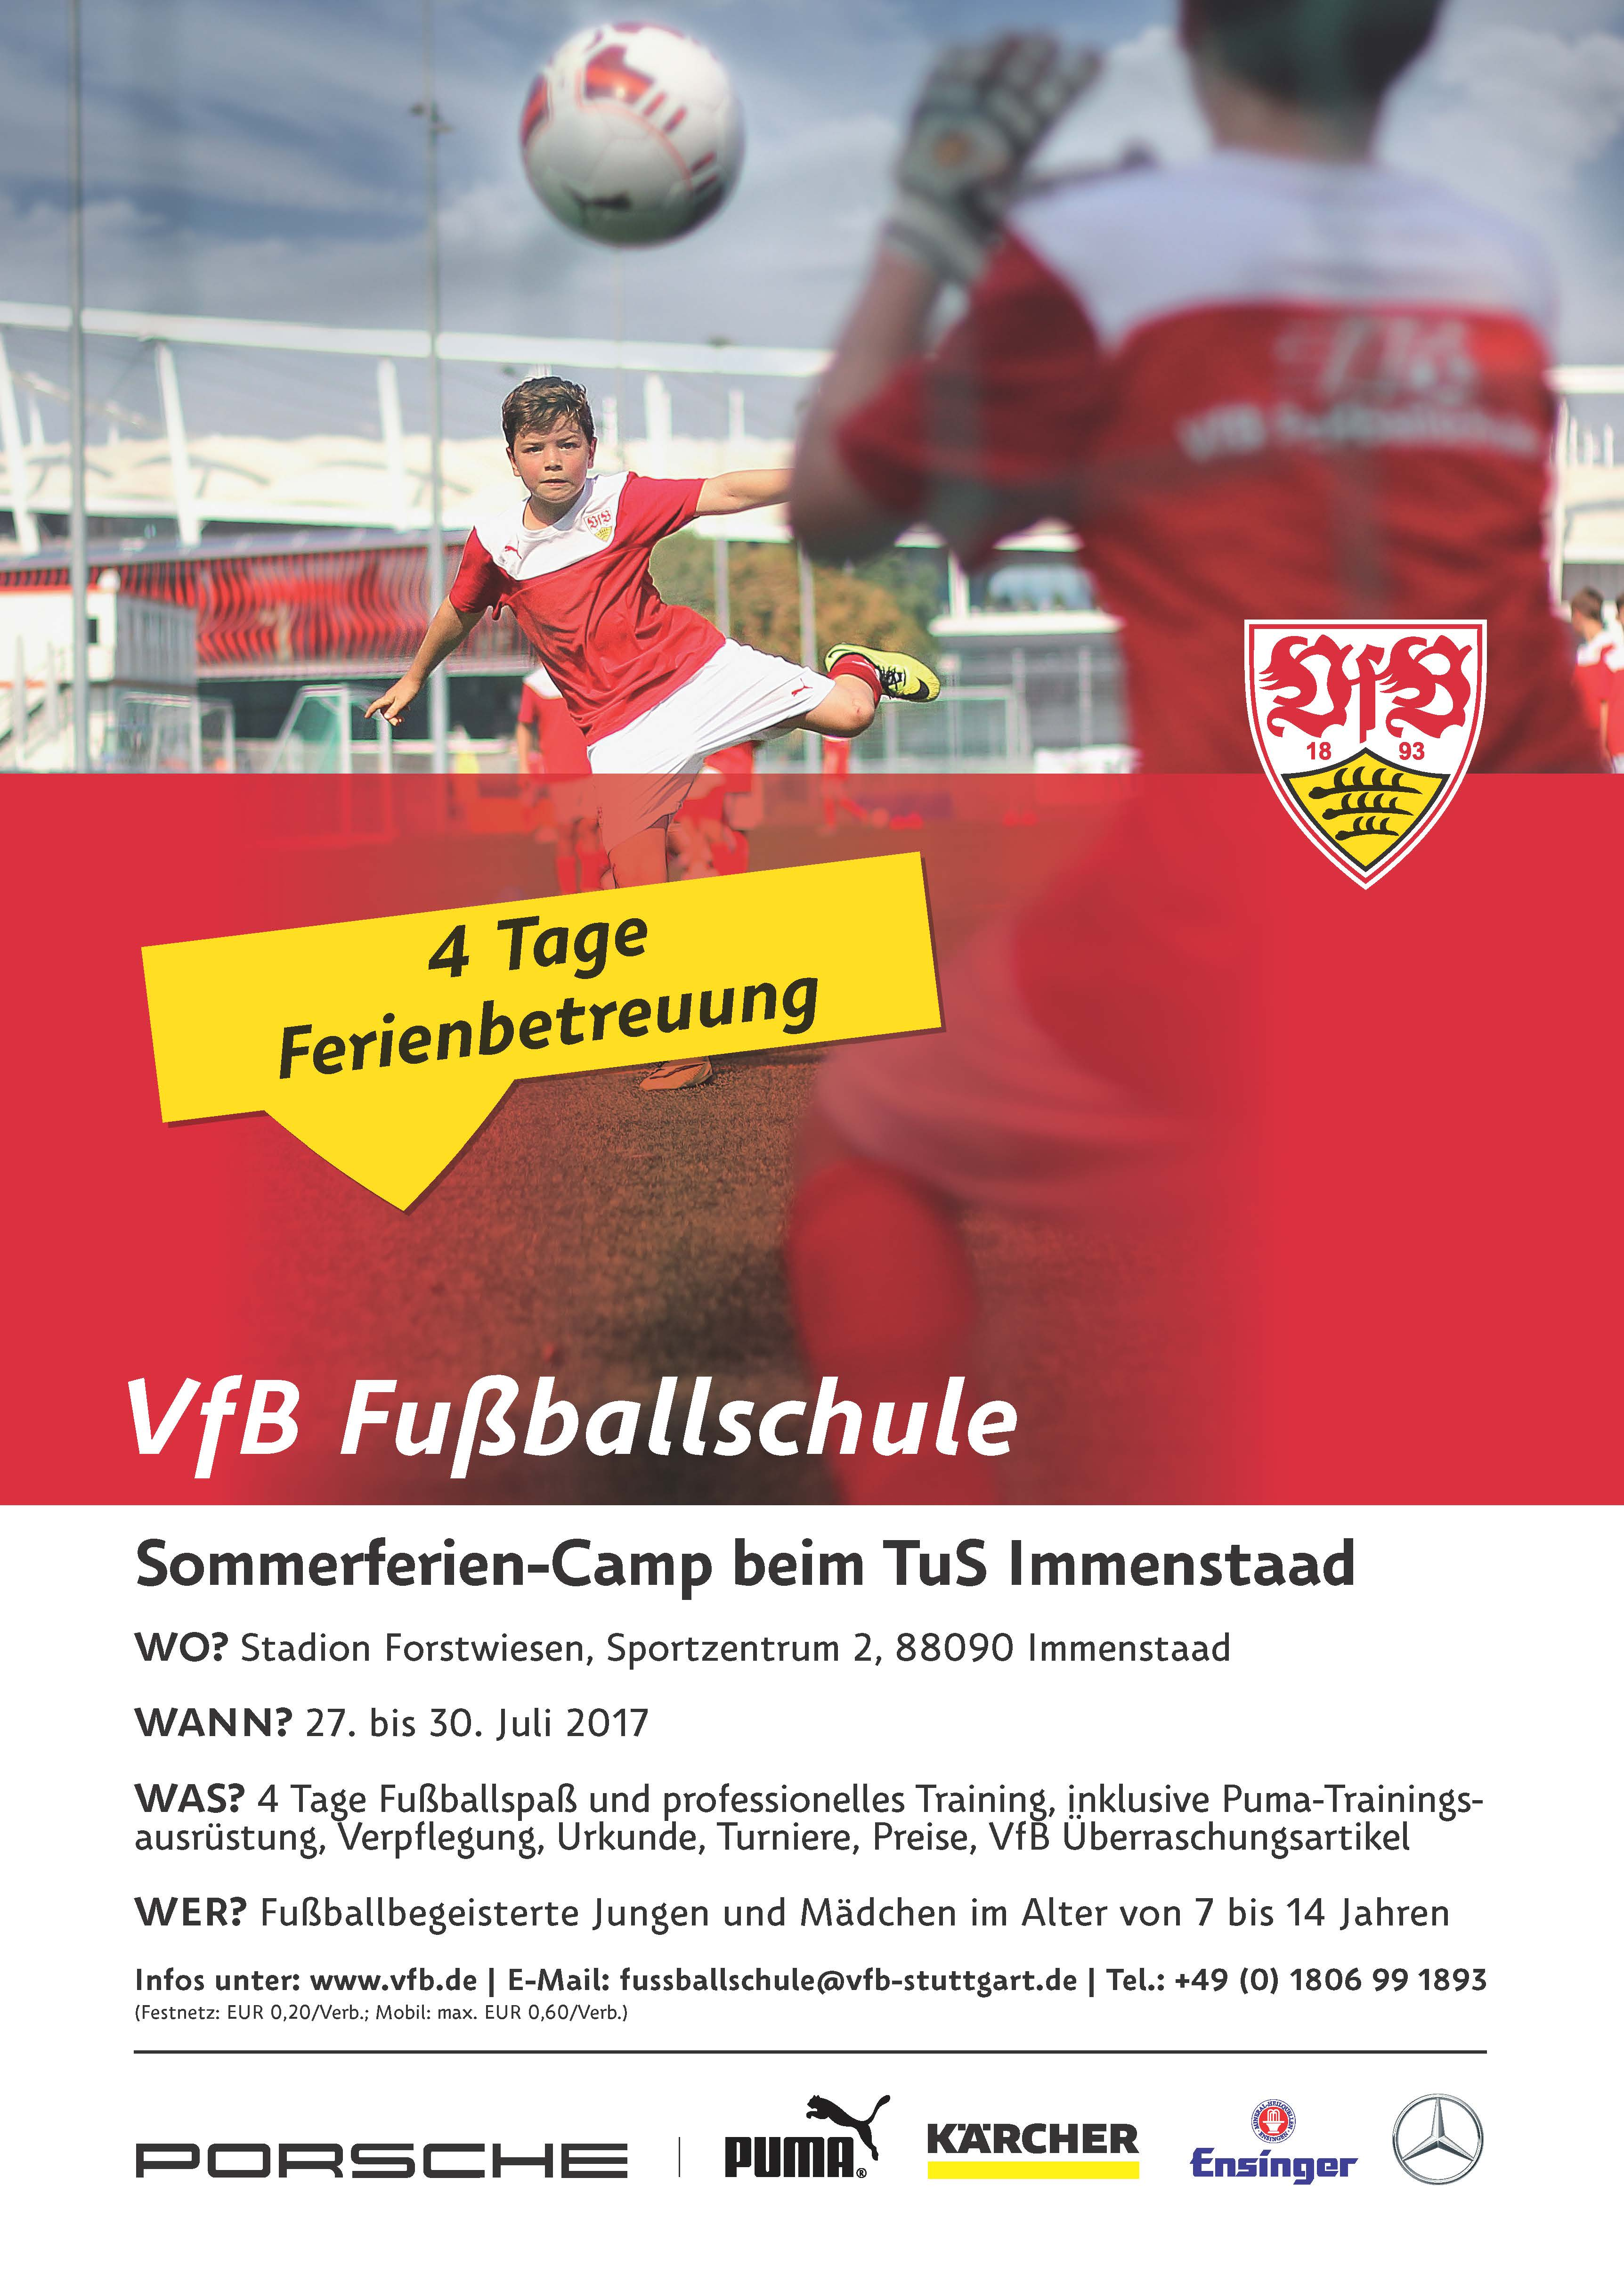 16 MV B2C FS SommerferienCamp Immenstaad Poster A3 online